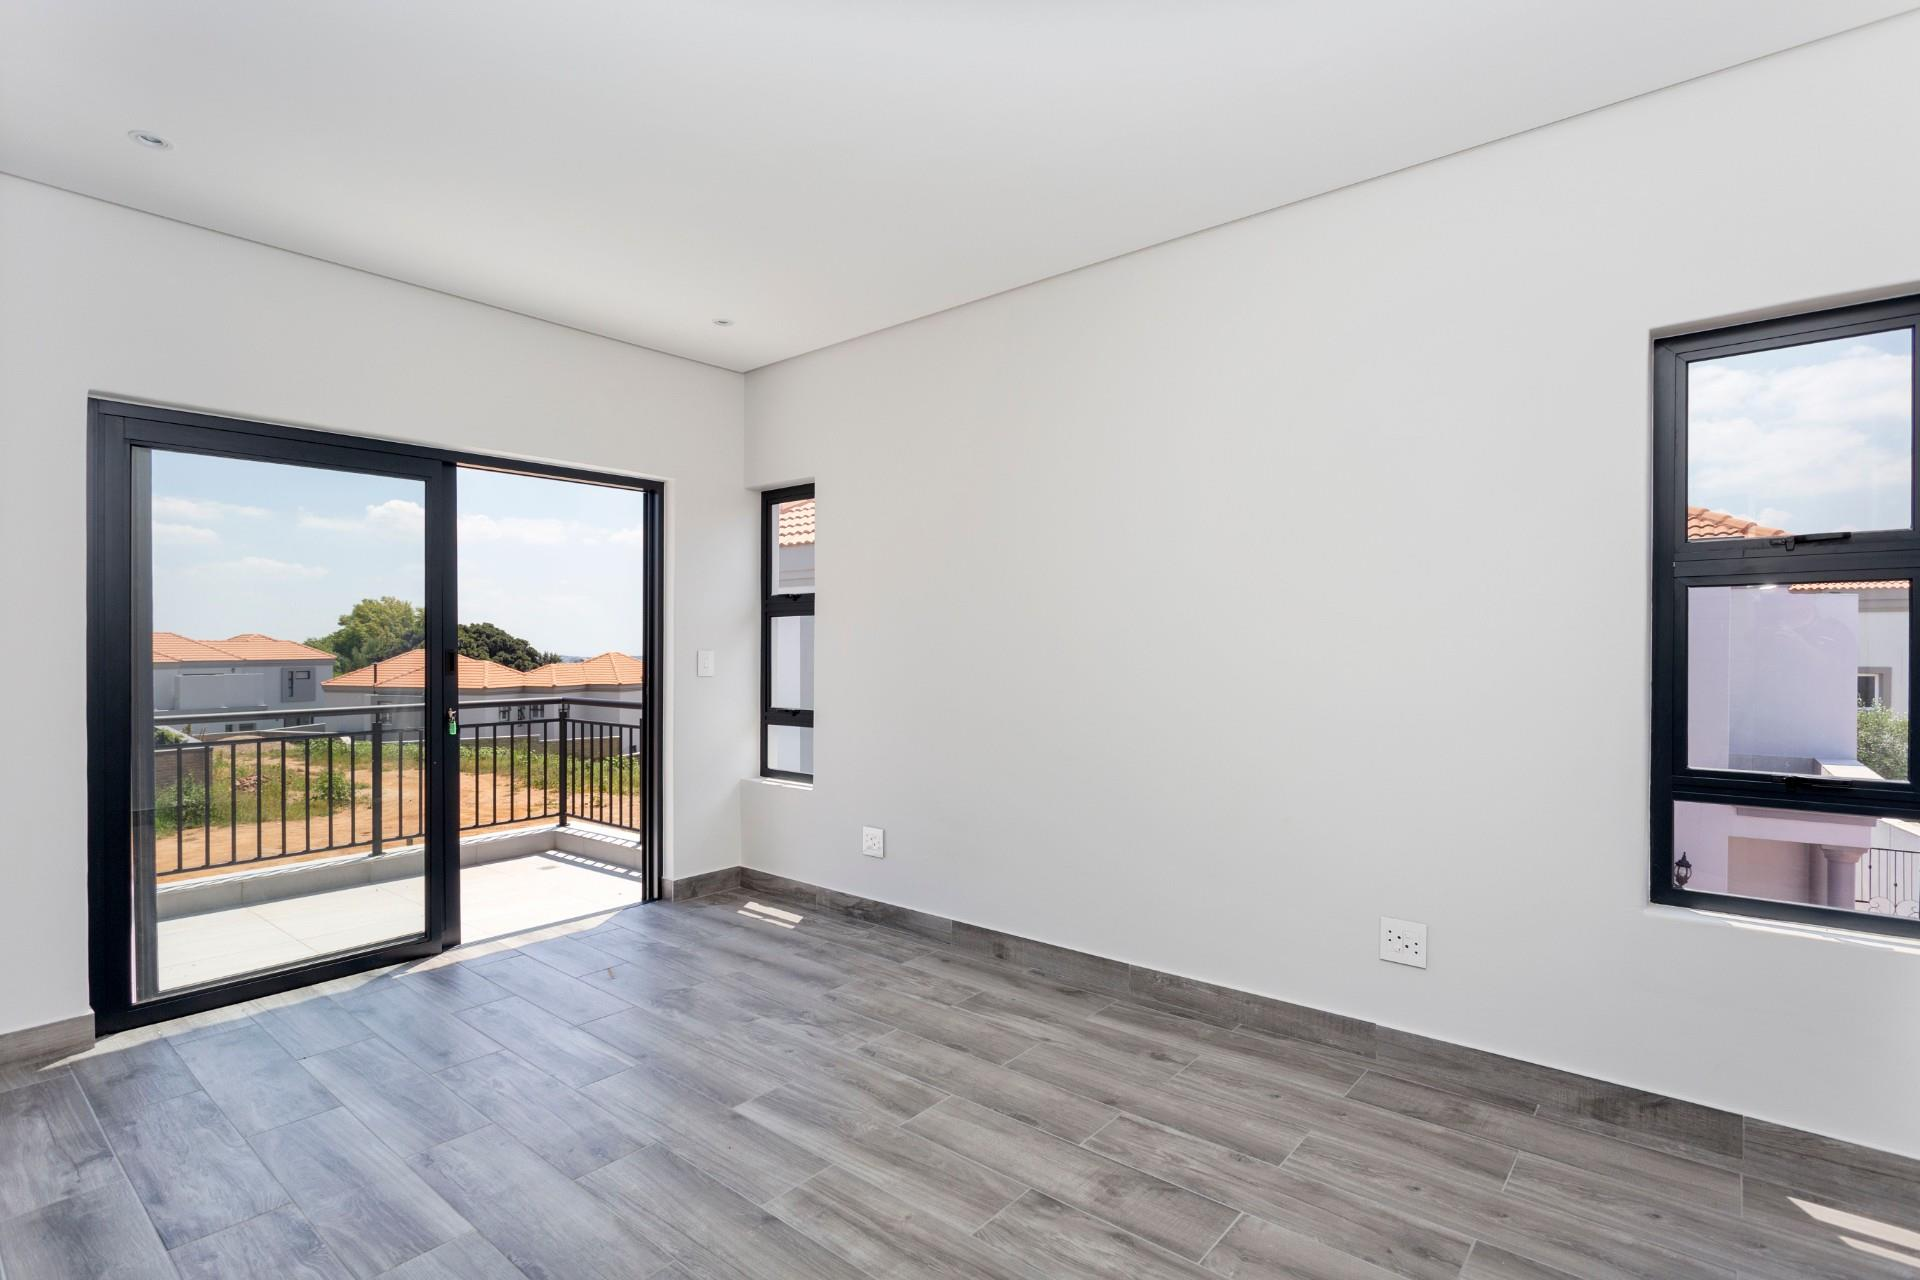 4 Bedroom House To Rent in Hyde Park